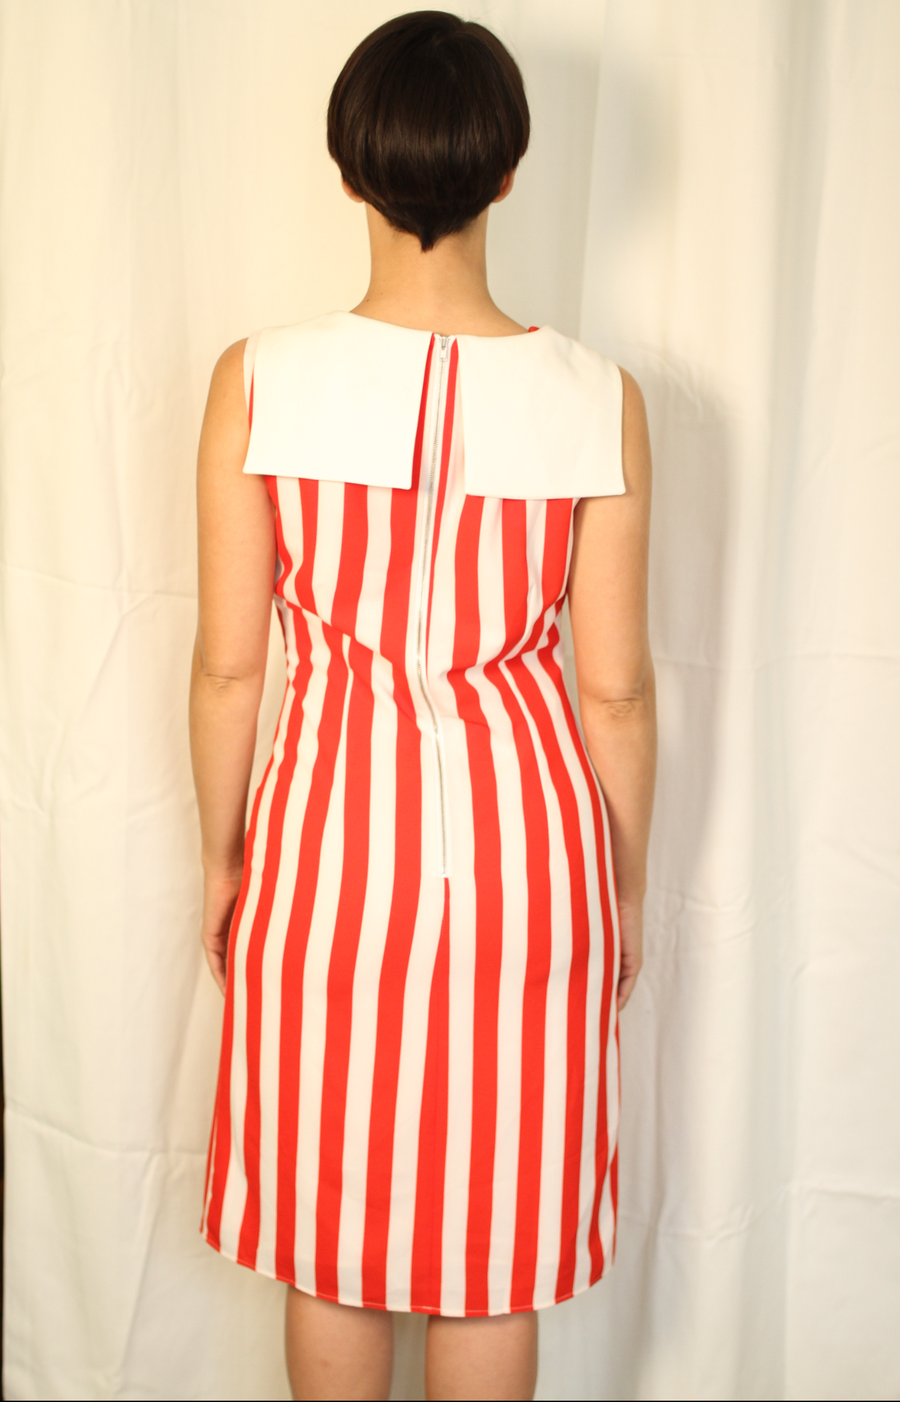 ee73e7ca6c2 Bestsolus Boutique NY — Sailor Red   White Vertical Striped Dress